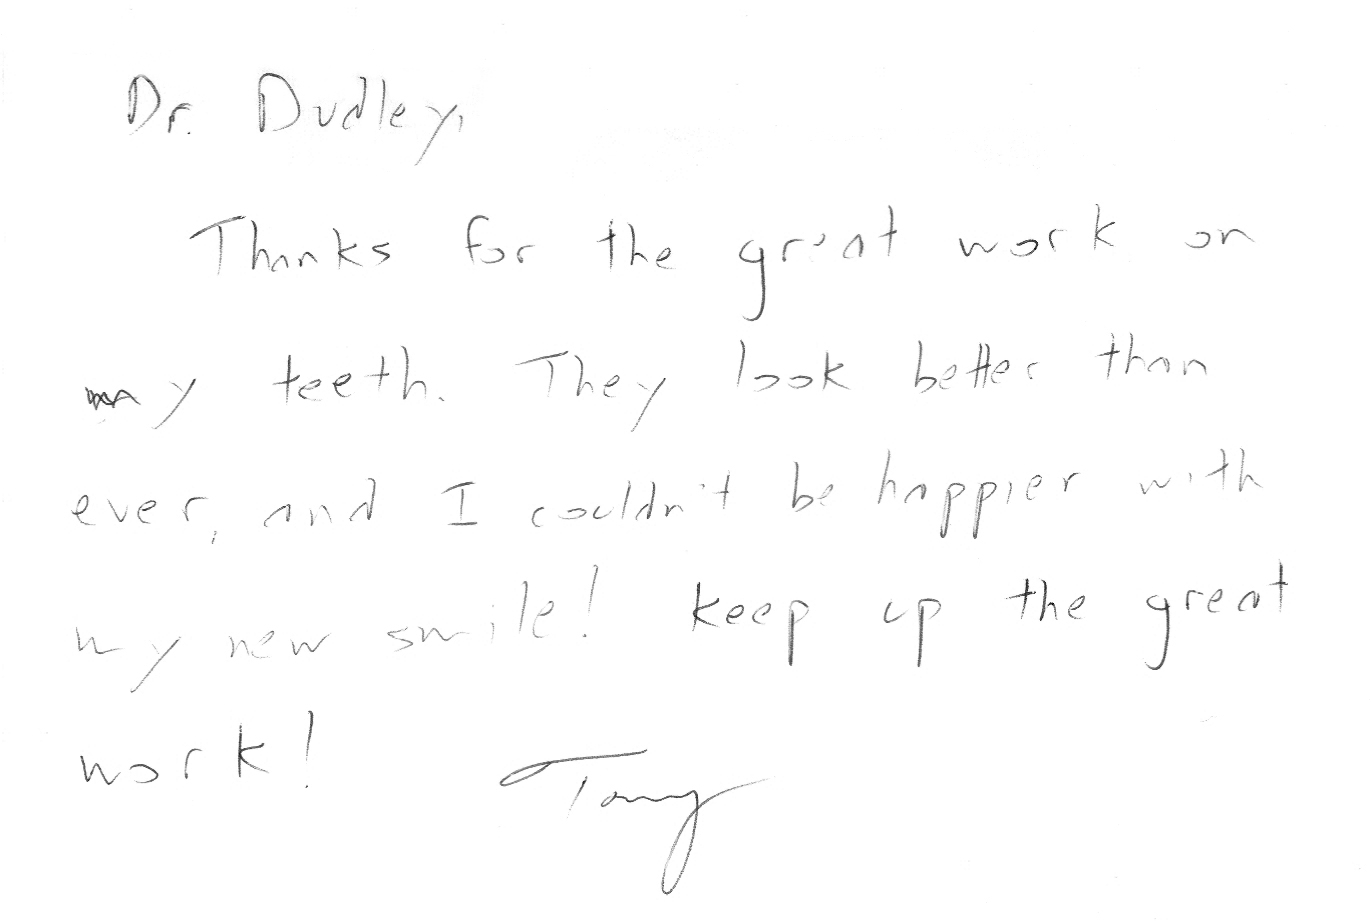 Thanks for the note, Tony!